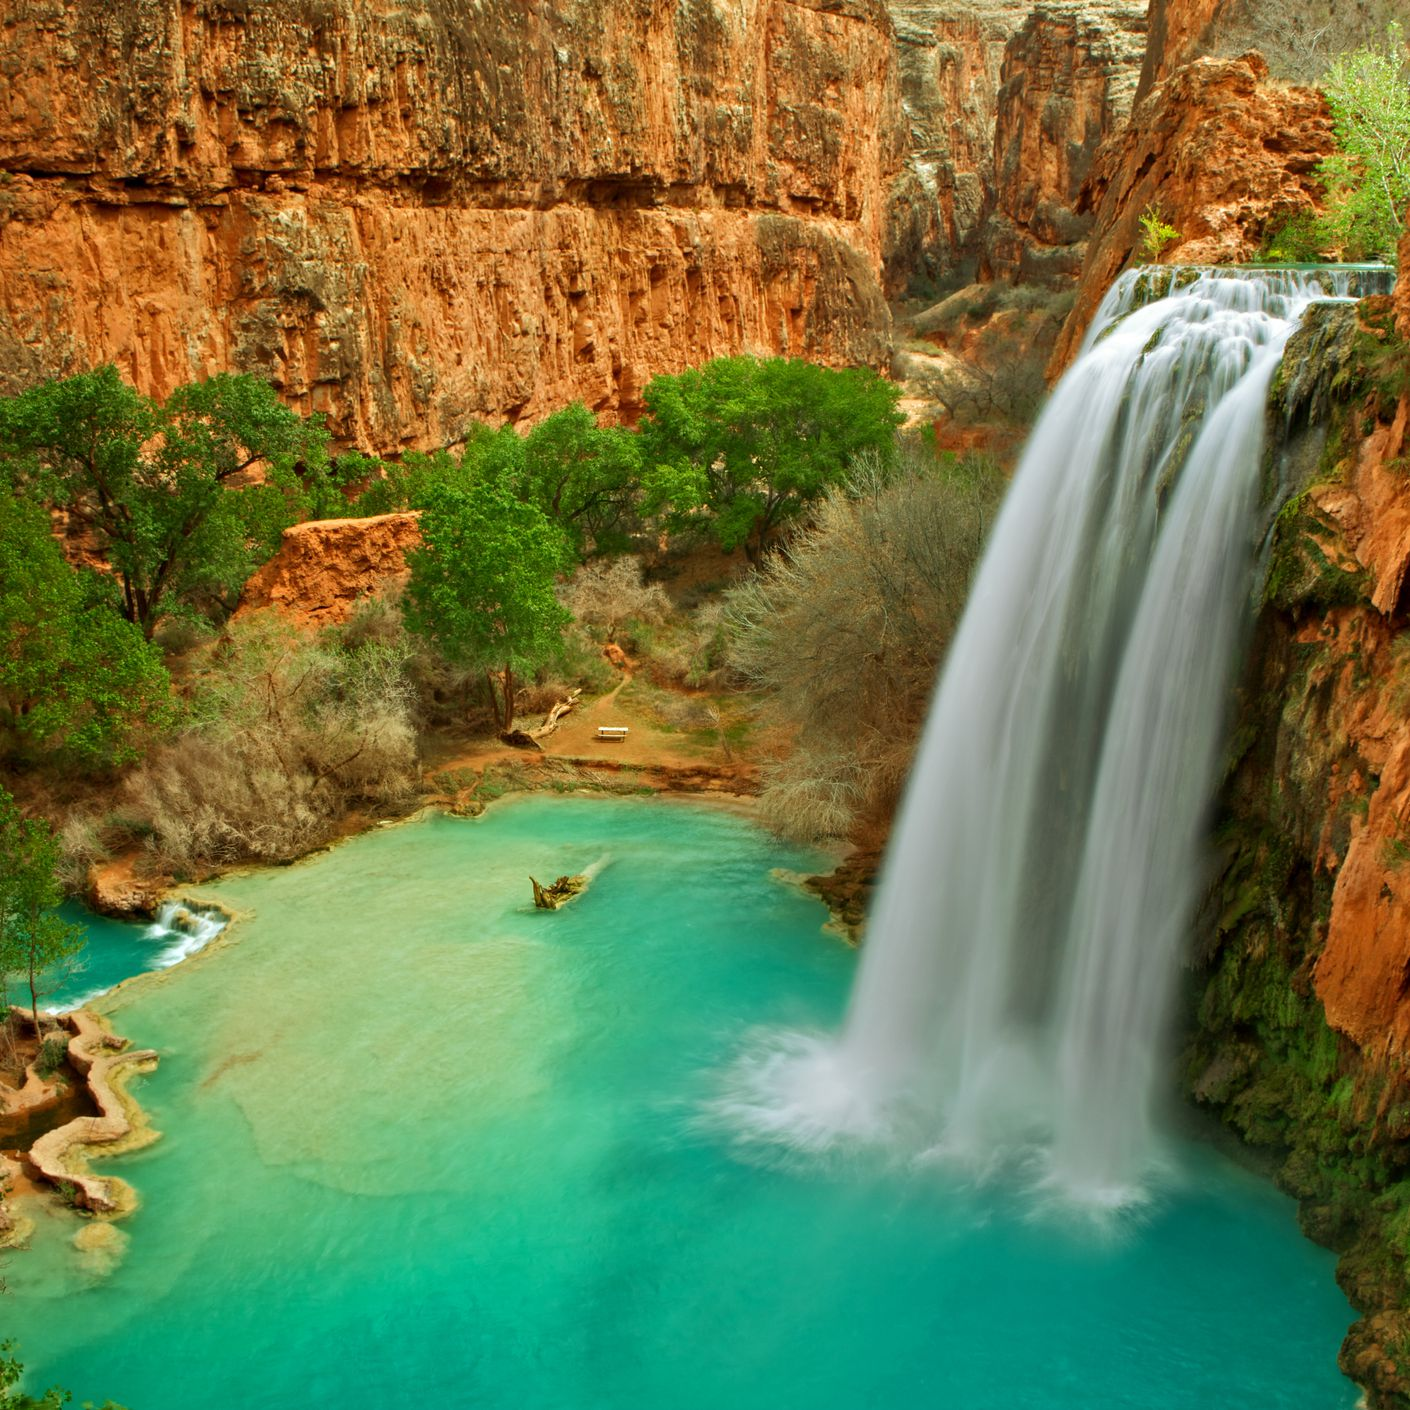 You'll Definitely Want to Go Chasing Waterfalls When You See These Stunners